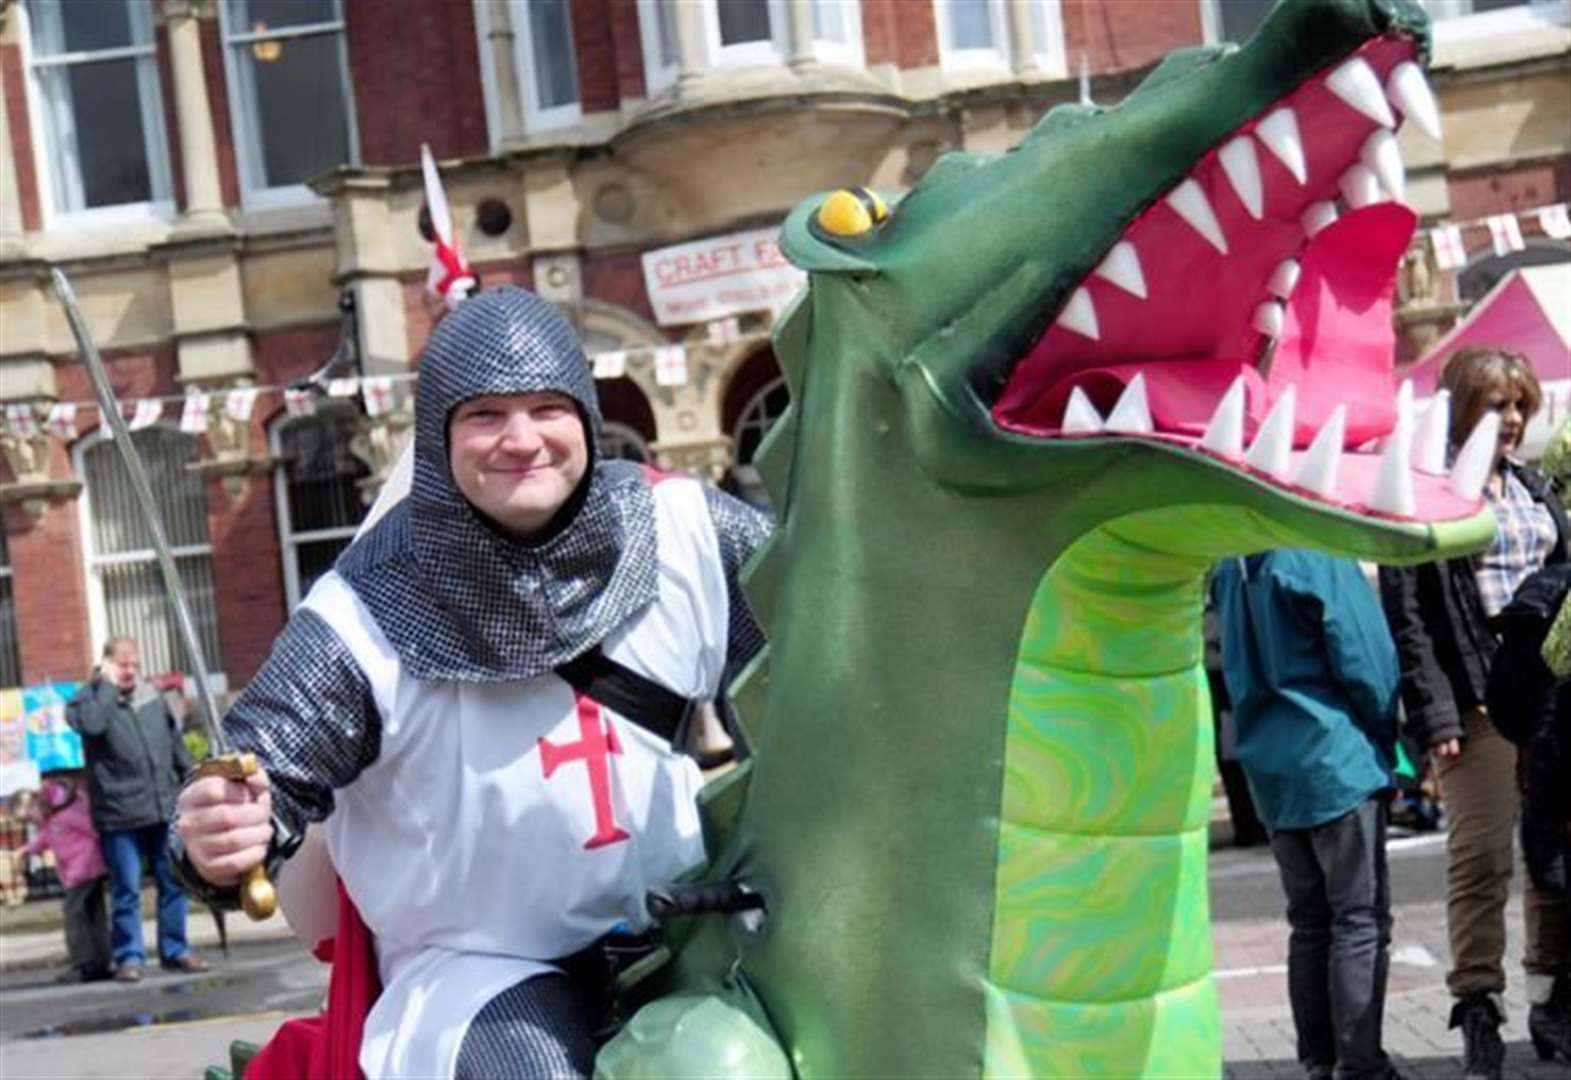 Join in celebration of patron saint George